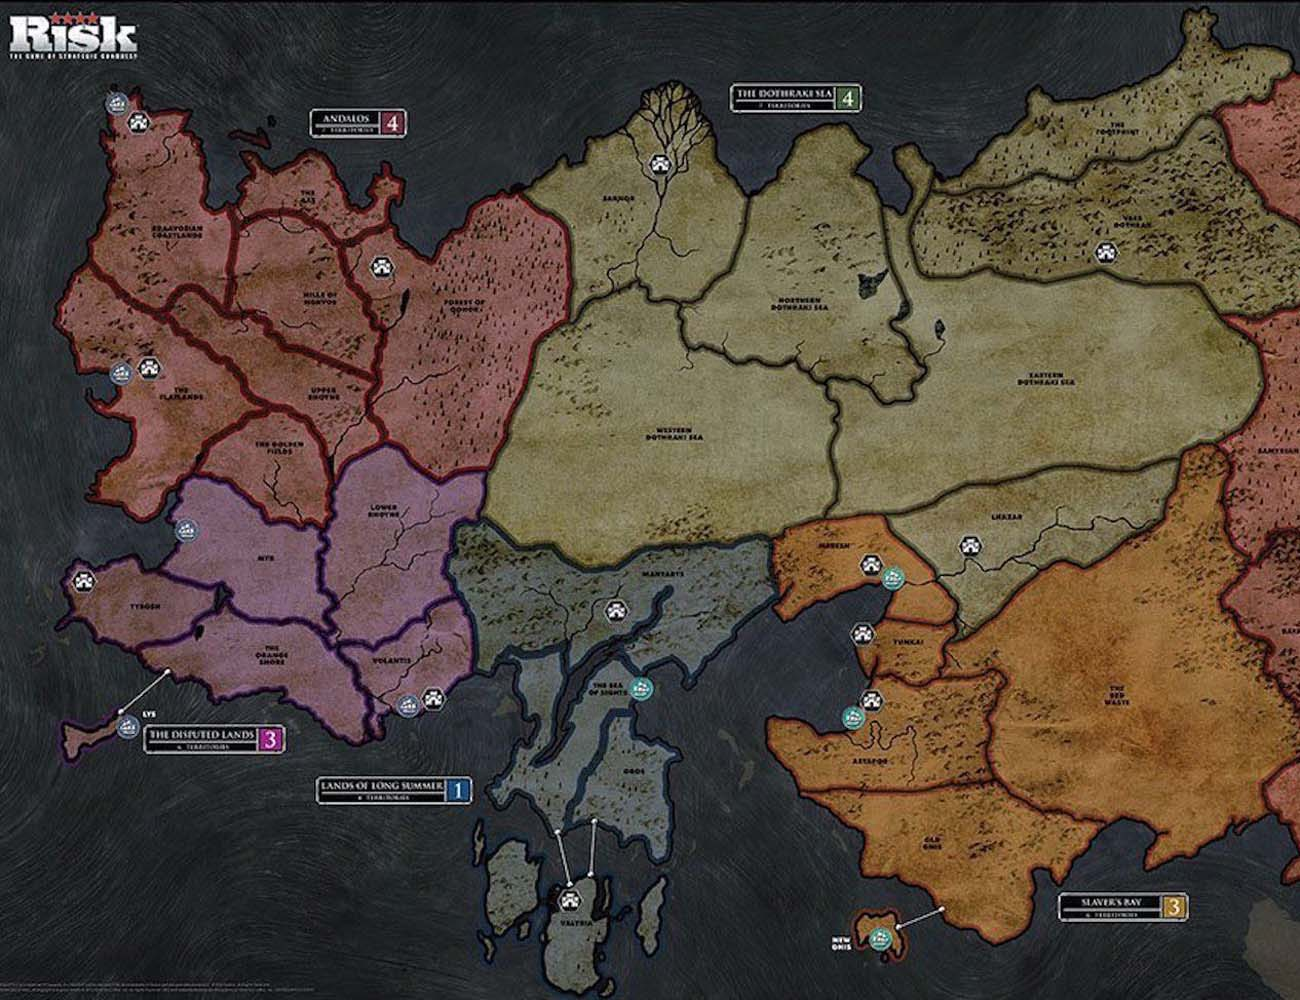 Risk – Game of Thrones Board Game